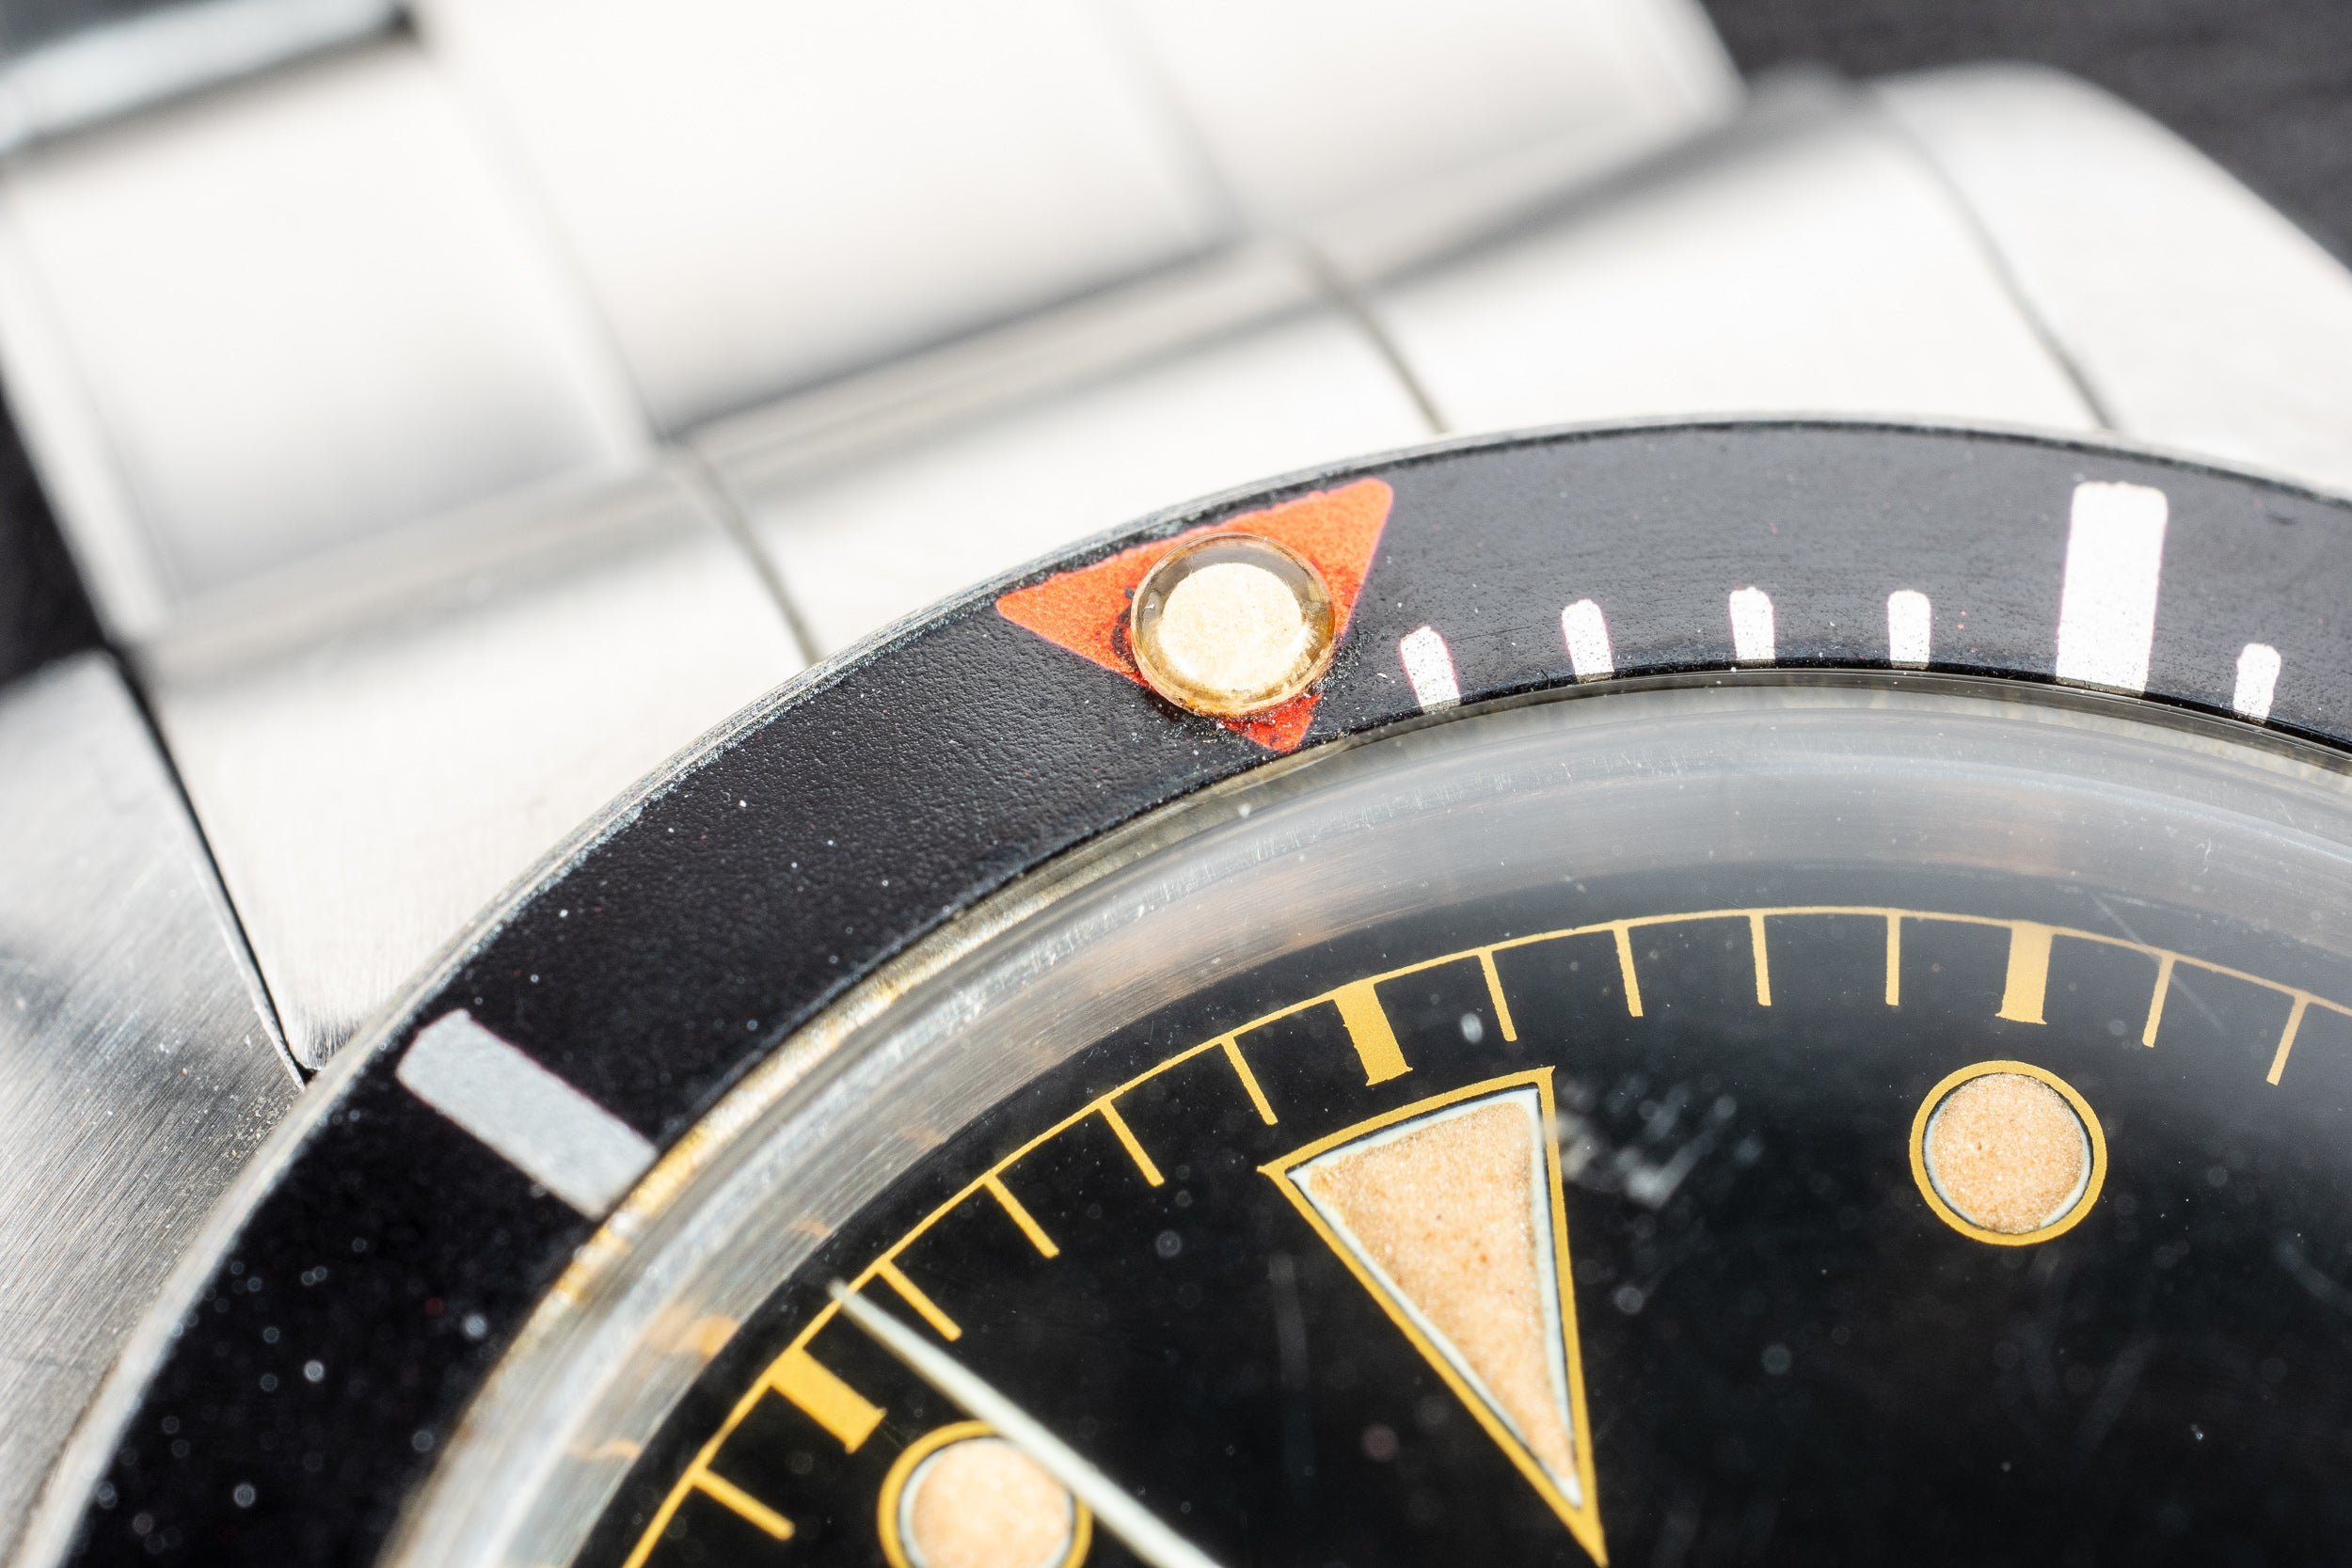 Macro on Rolex Submariner red triangle bezel in The Colourful World of Vintage Watches for A Collected Man London